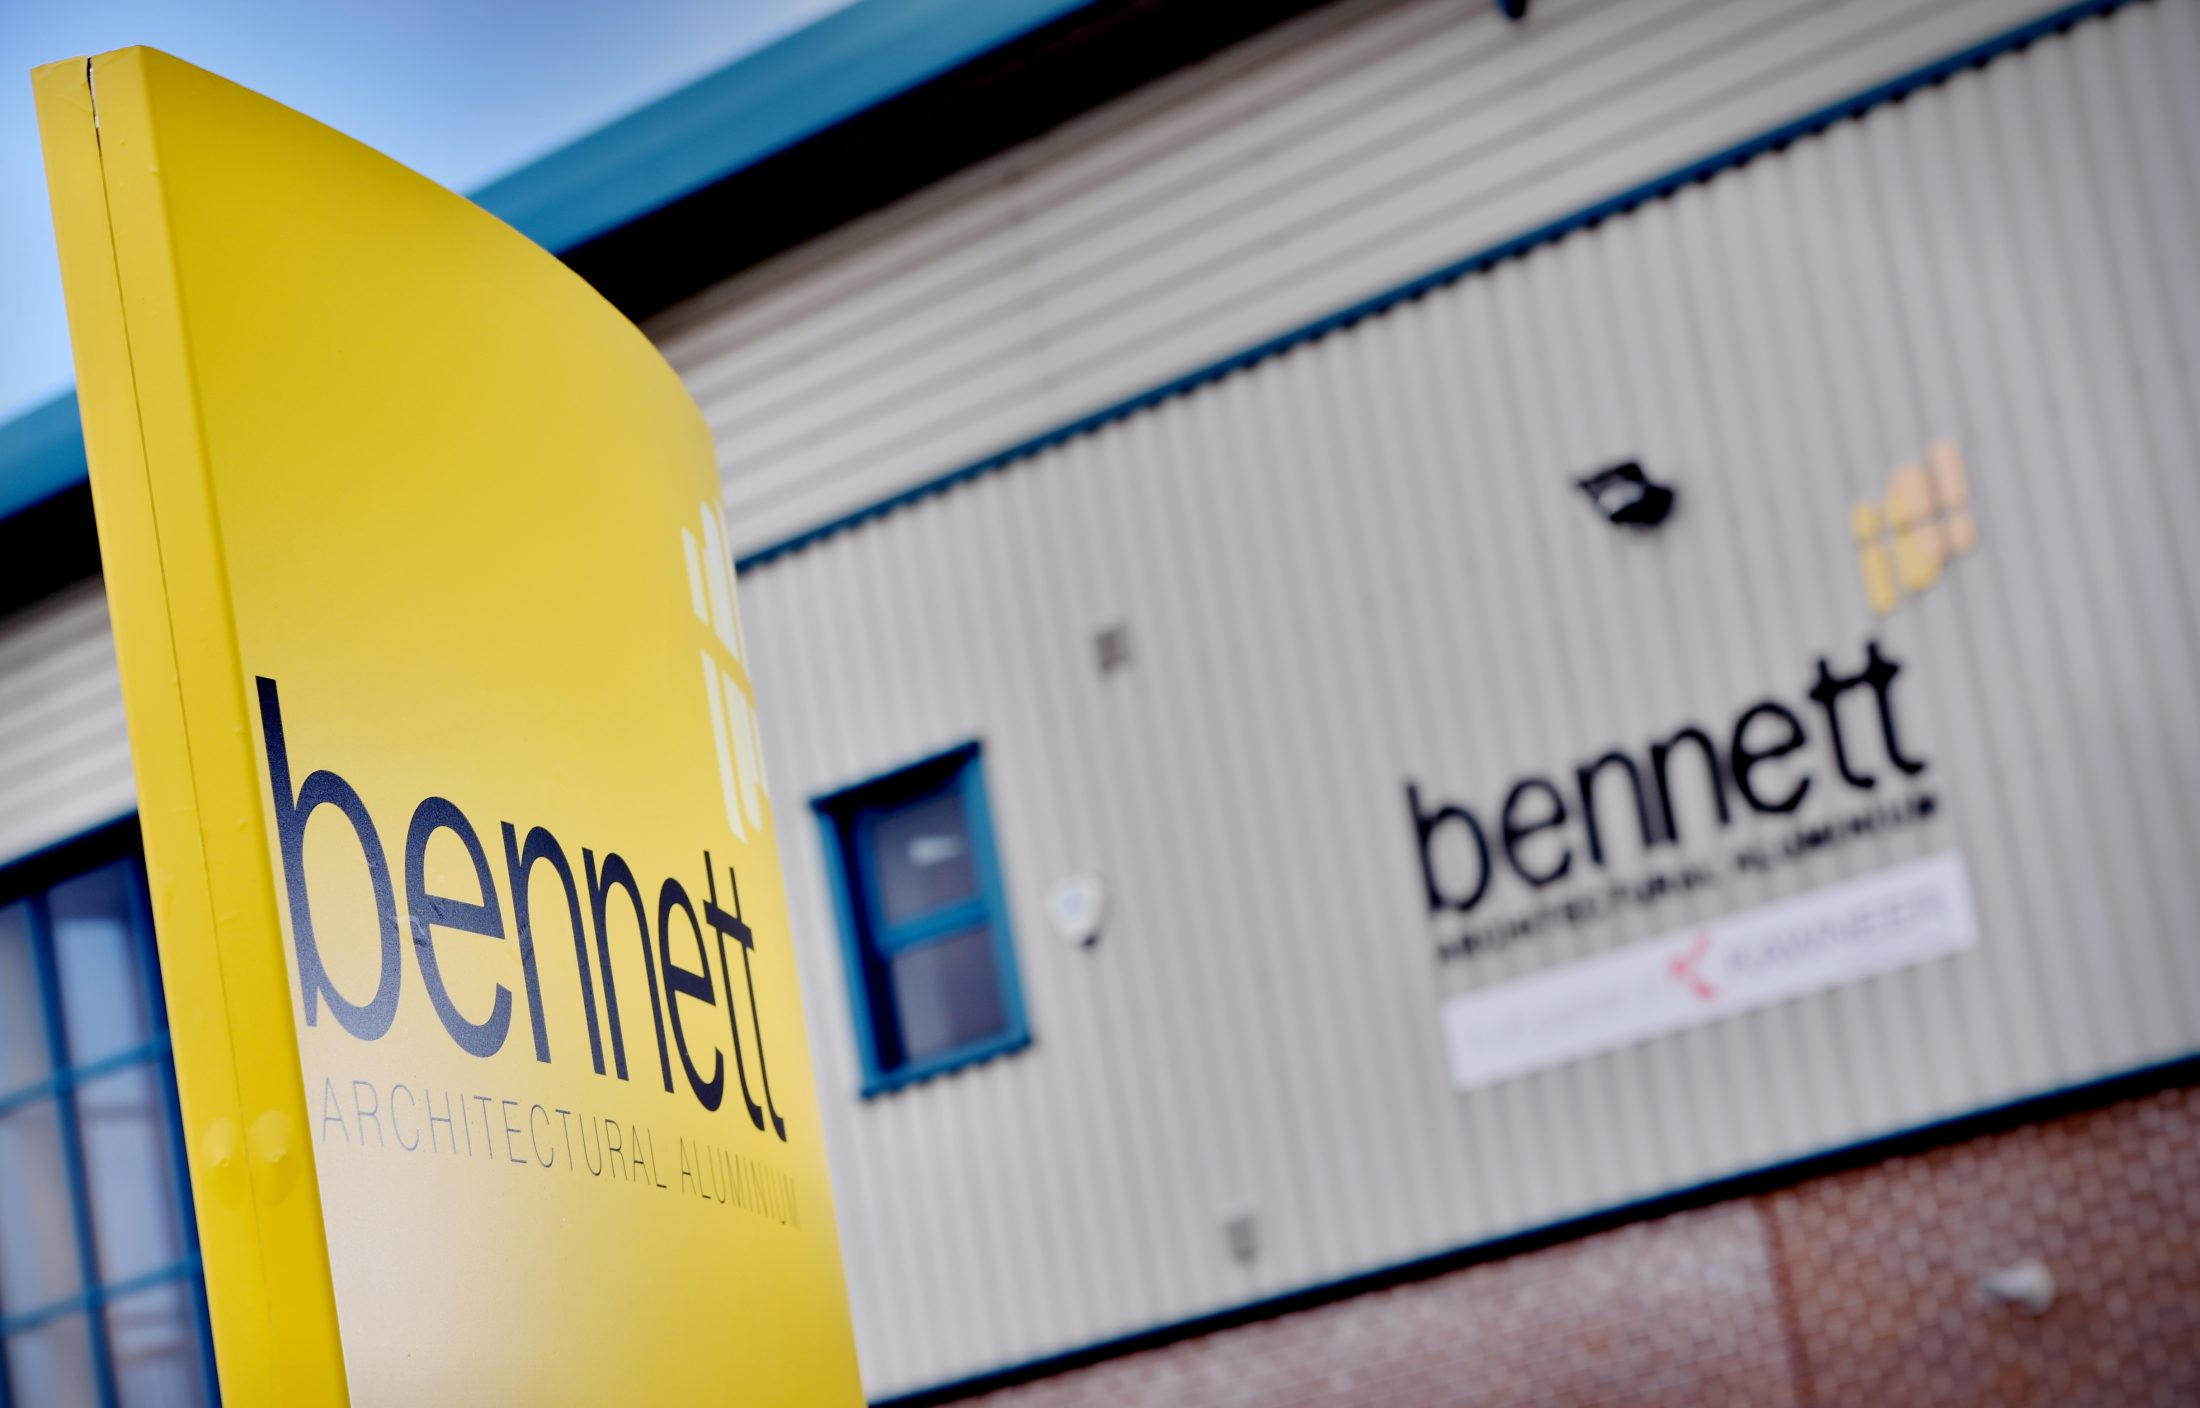 Bennett Architectural: Our customers